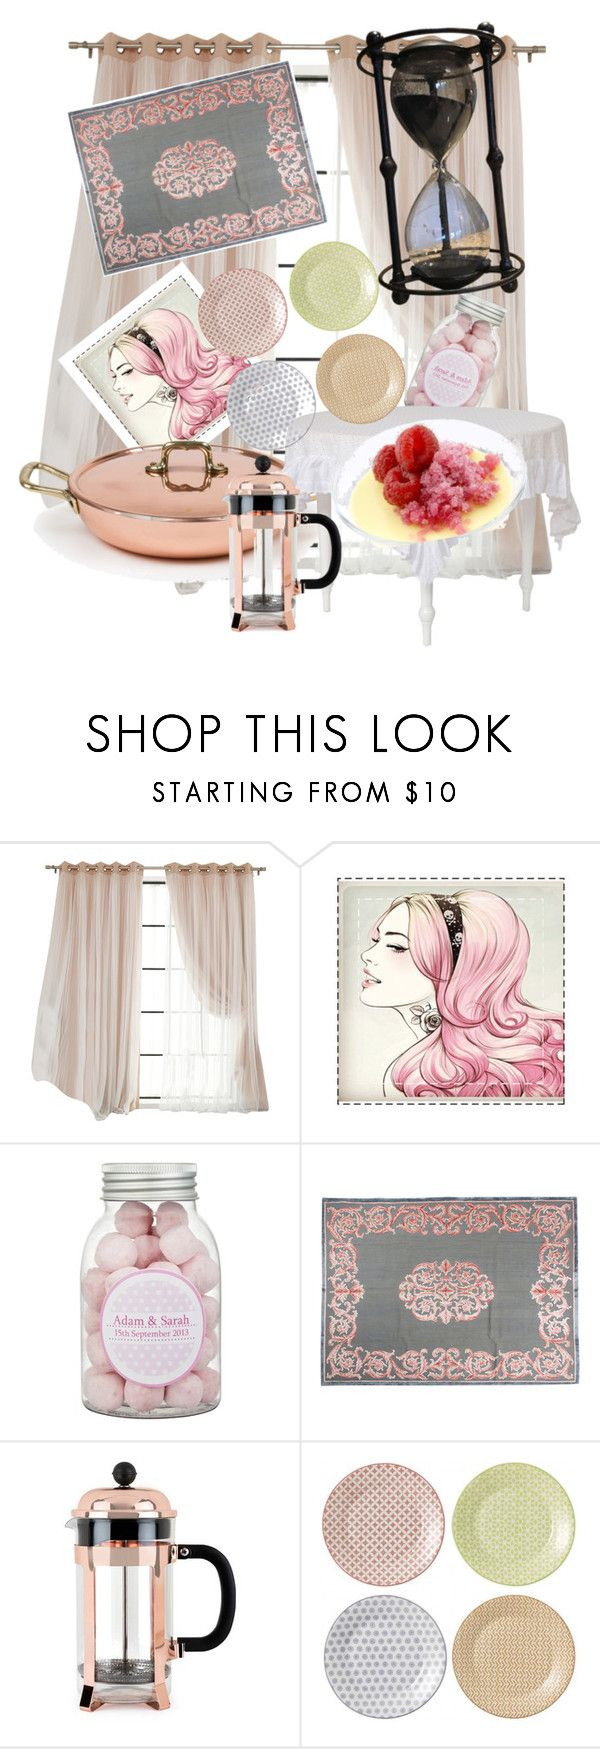 """""""Untitled #162"""" by vendys on Polyvore featuring interior, interiors, interior design, home, home decor, interior decorating, Golran and Royal Doulton"""